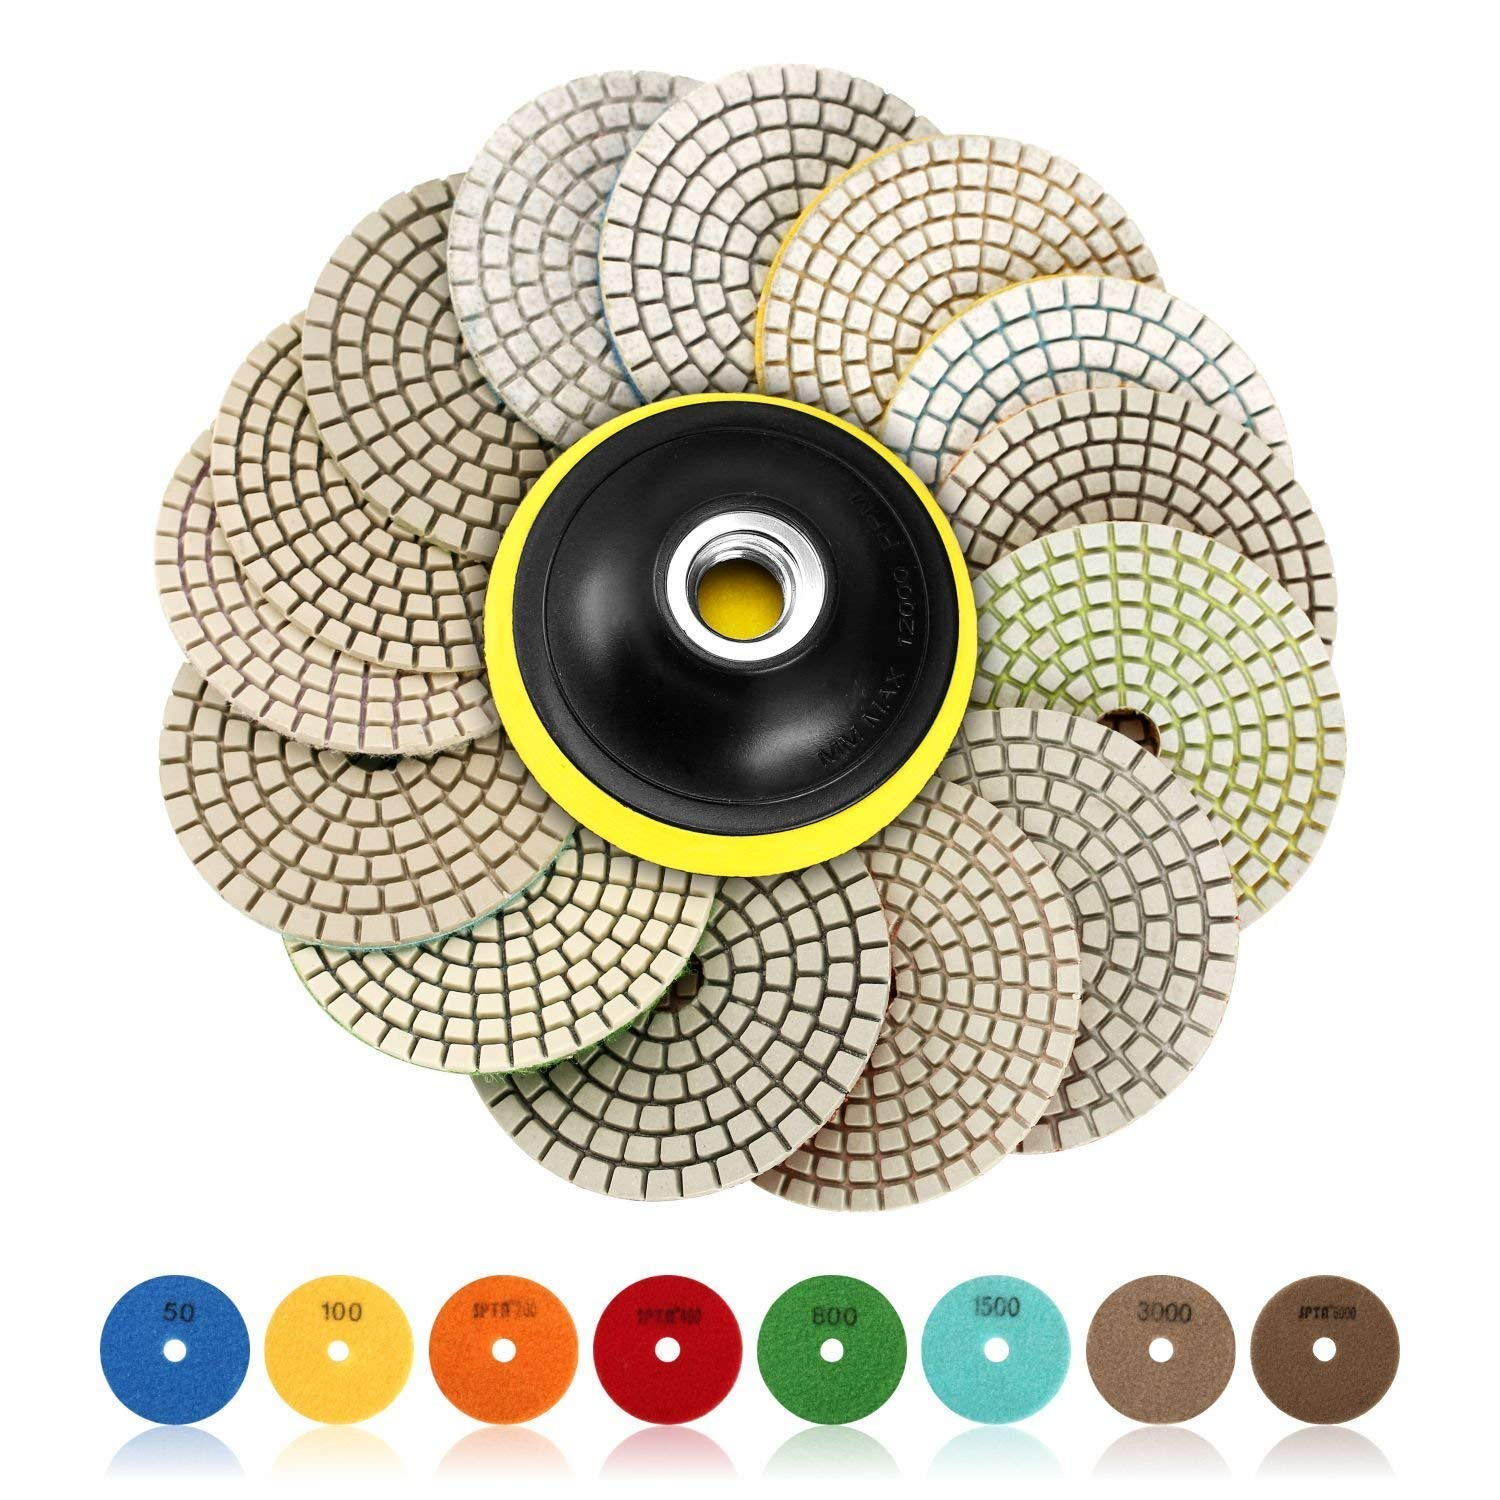 SPTA 15pcs Diamond Wet Polishing Pads Set, 4 inch pads for Granite Stone Concrete Marble Floor Grinder or Polisher, 50#-6000# with Hook & Loop Backing Holder Disc